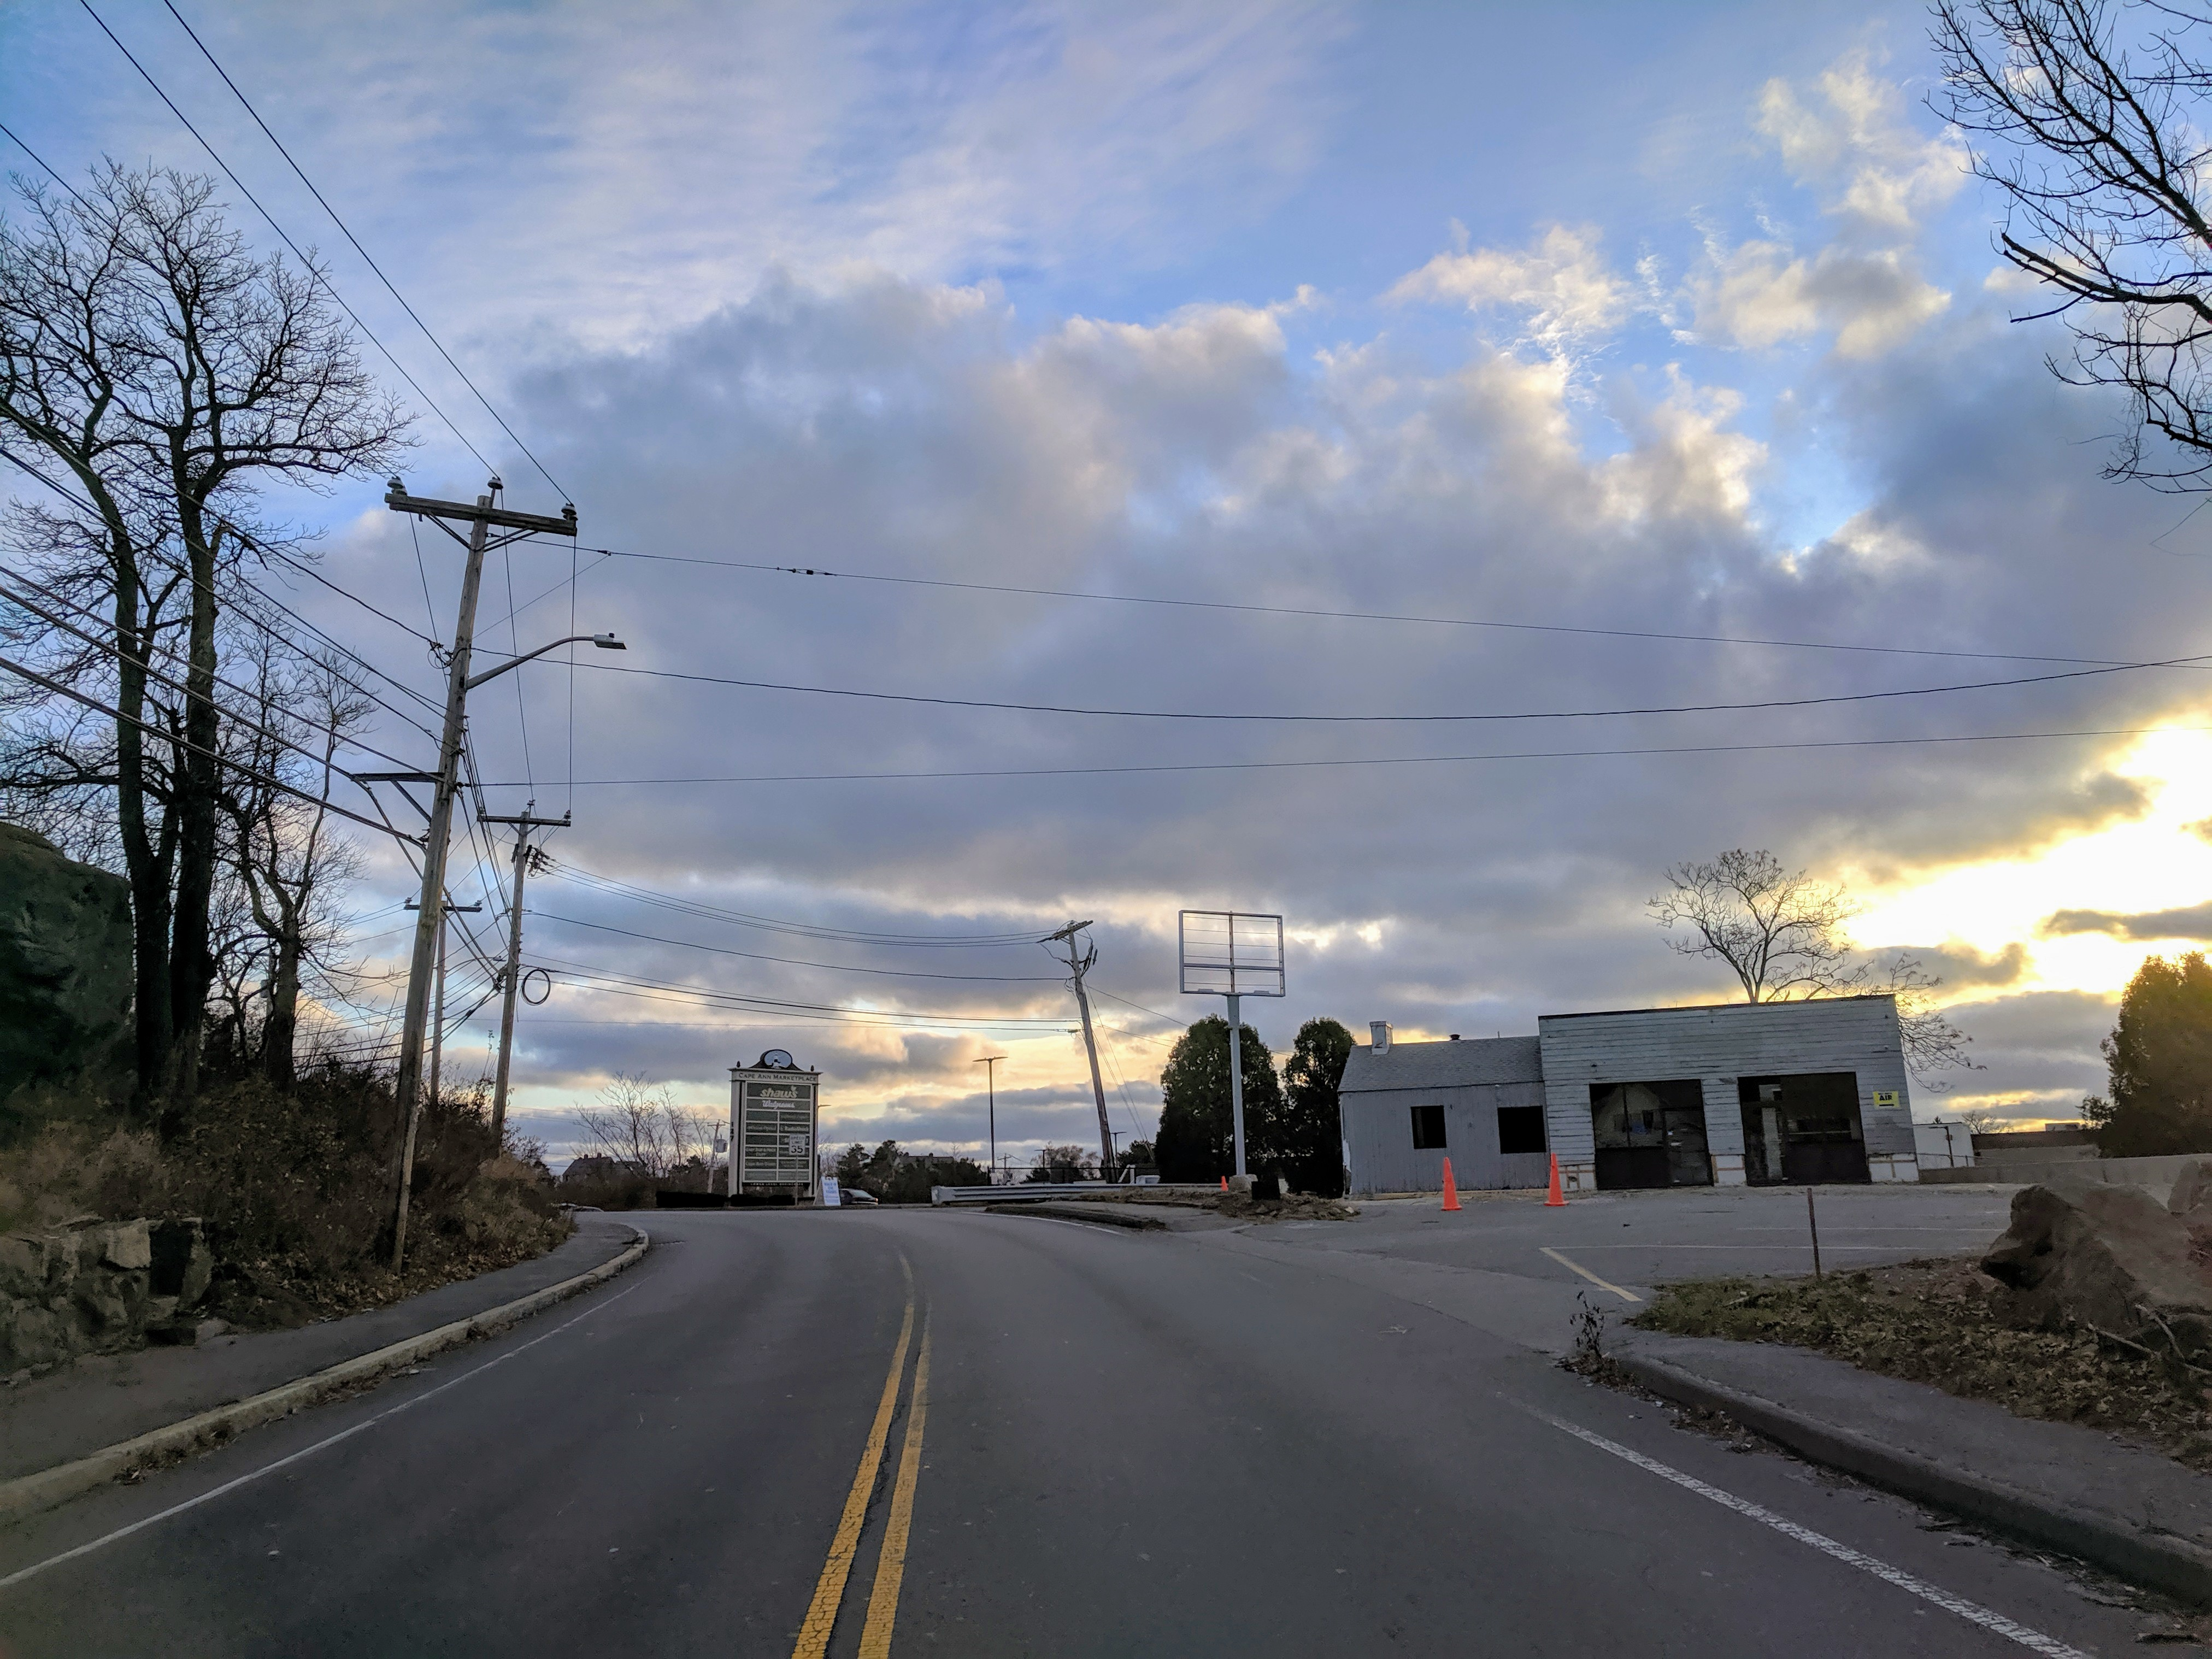 Enterprise coming to 123 Eastern Avenue former Gulf station Rt 127 Gloucester Mass._20191117_©c ryan